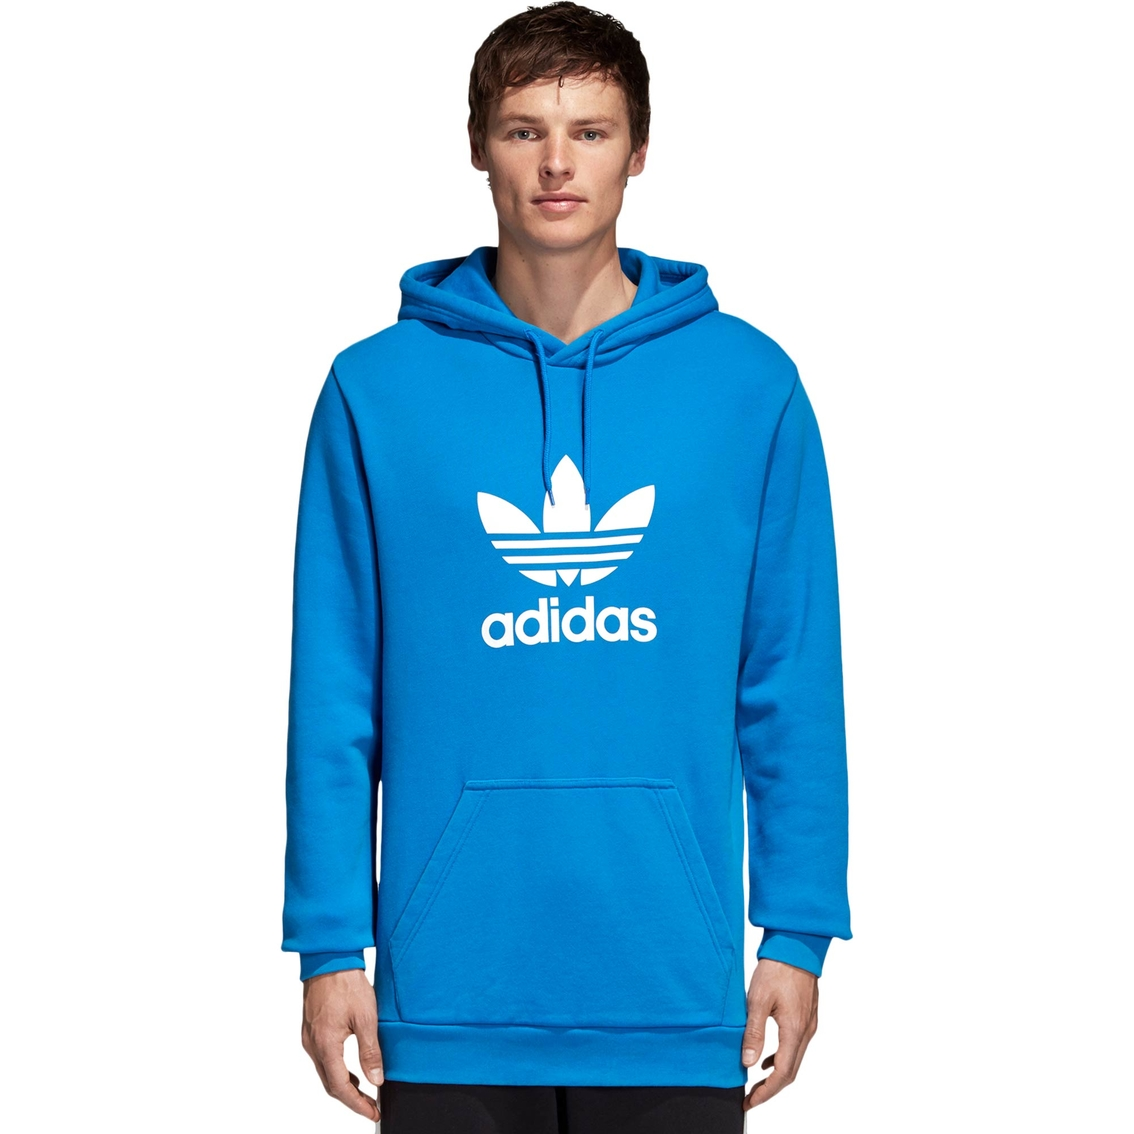 exquisite style many styles best price Adidas Trefoil Hoodie | Hoodies & Jackets | Clothing | Shop The ...